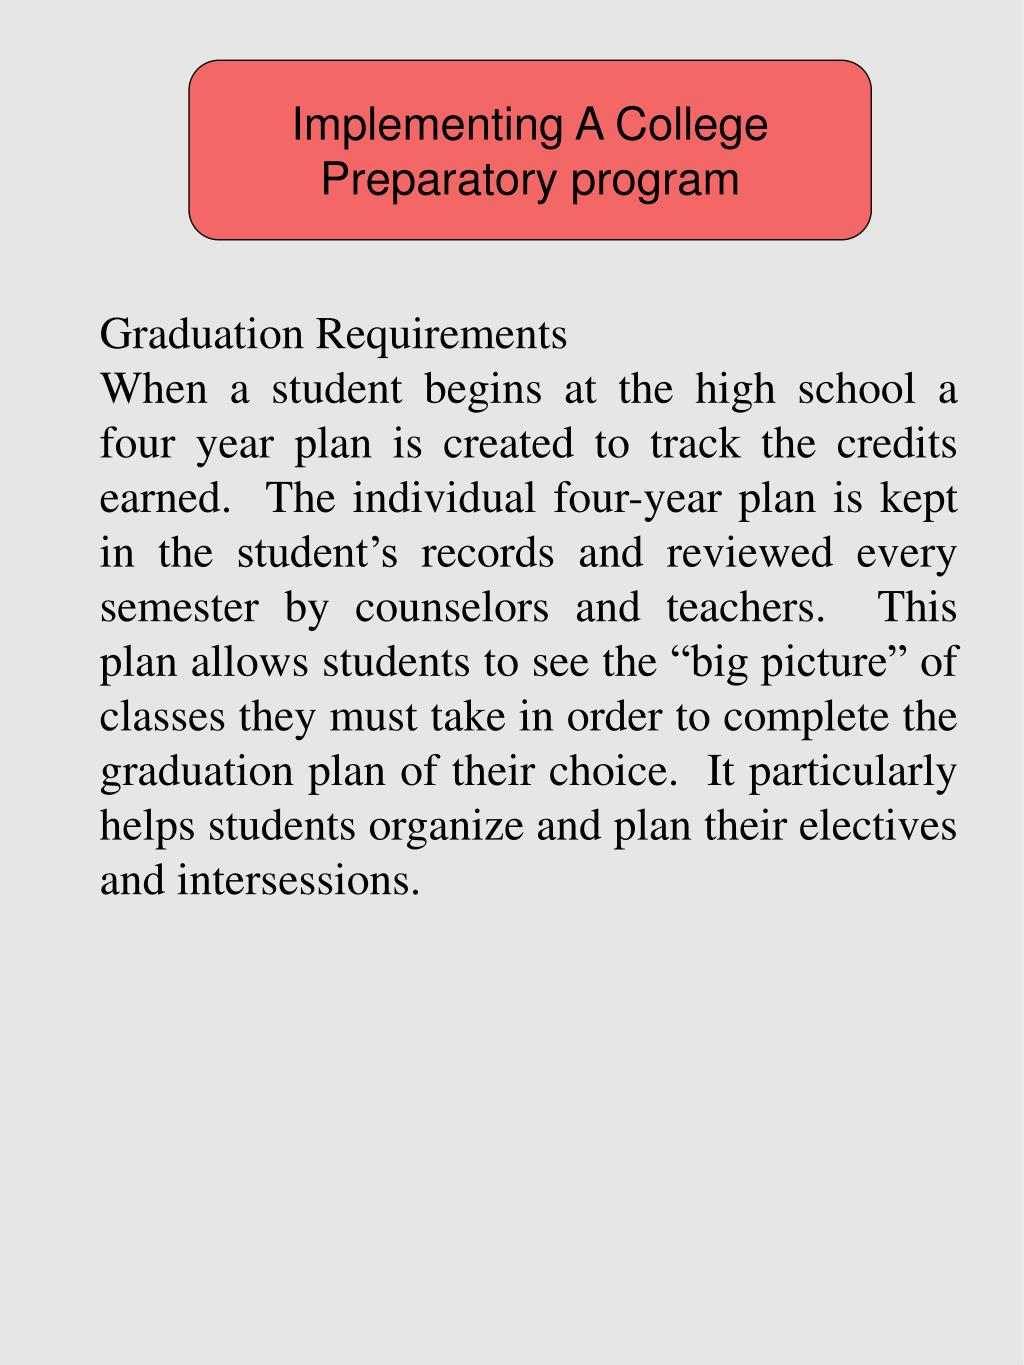 Implementing A College Preparatory program